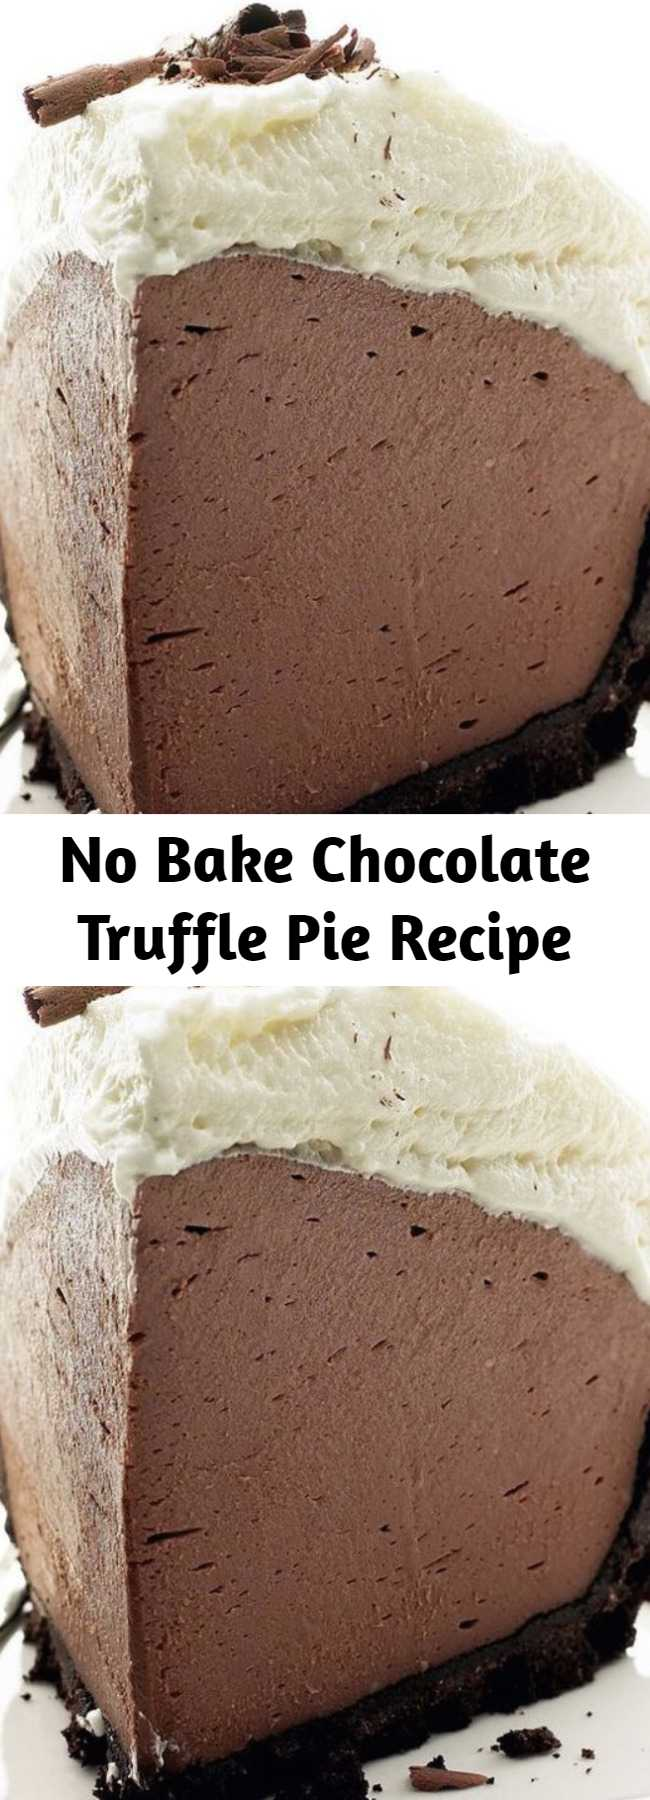 No Bake Chocolate Truffle Pie Recipe - This easy no bake pie, is delicious and perfect for any occasion. Only 5 Ingredients and a 10 Minute Prep Time.